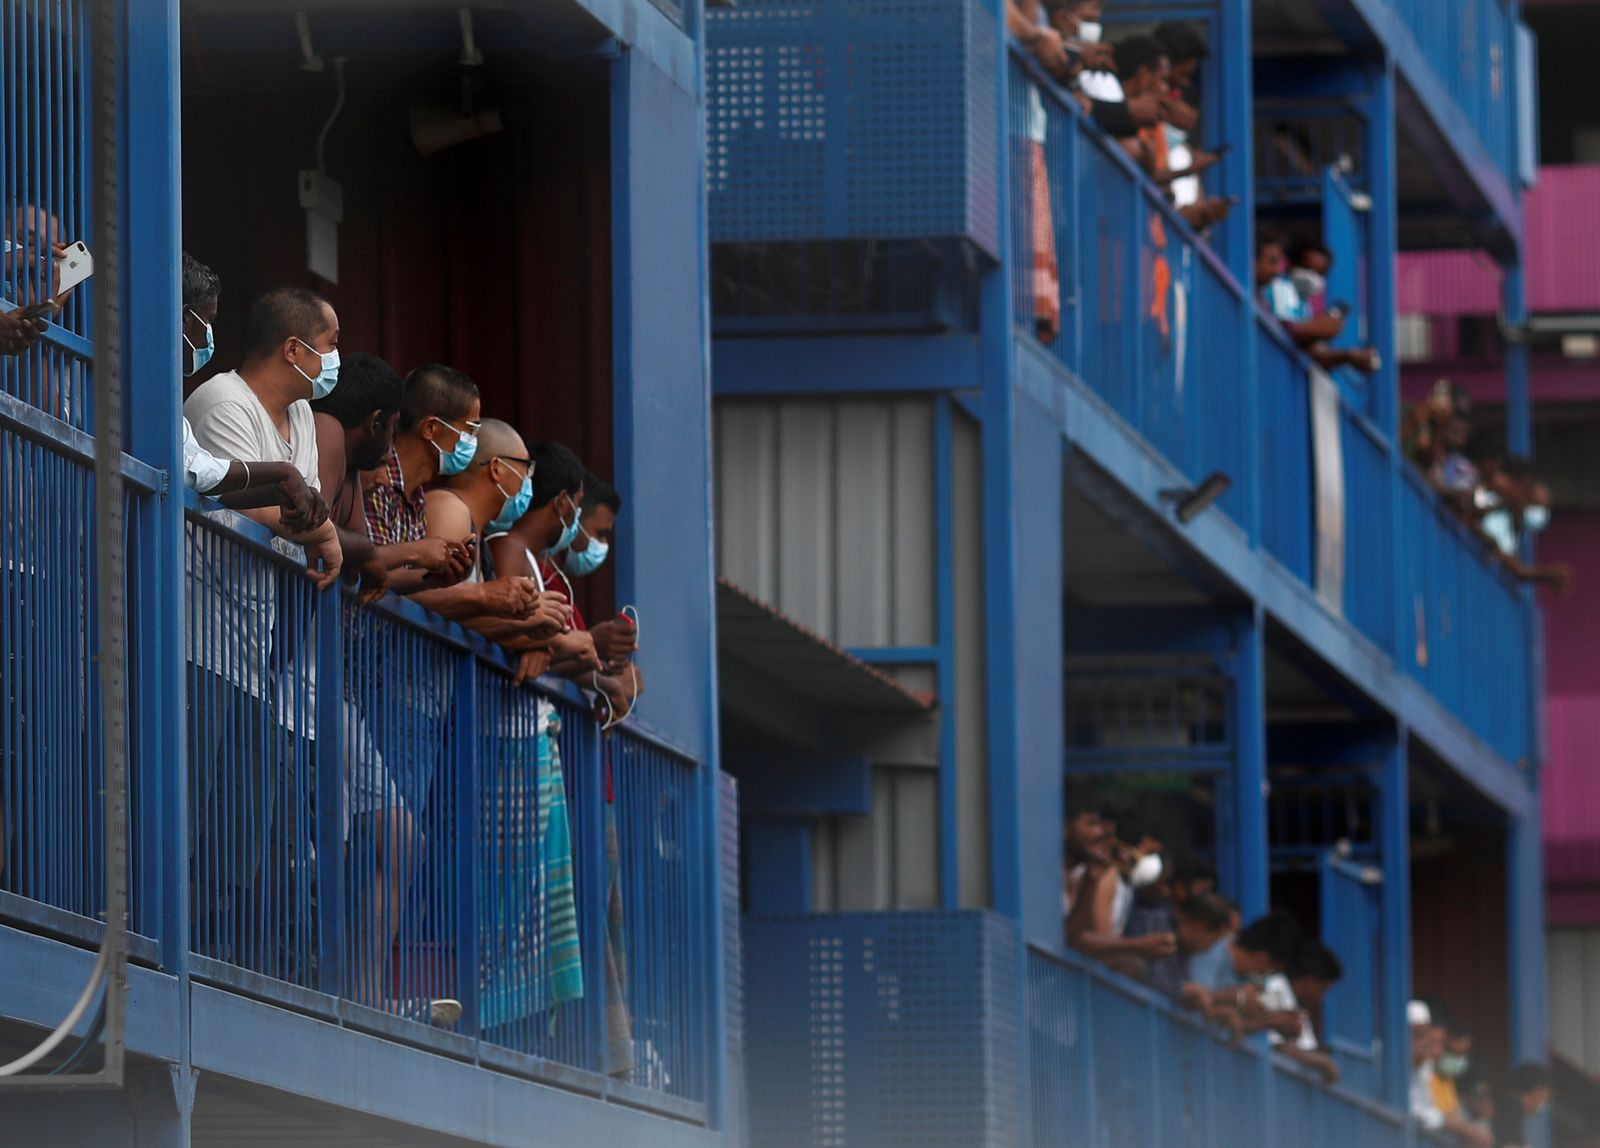 Workers from Bangladesh, India and China look out of their balconies during food distribution at Punggol S-11 workers' dormitory, which was gazetted to be an isolation facility after it became a cluster of coronavirus cases (COVID-19), in Singapore